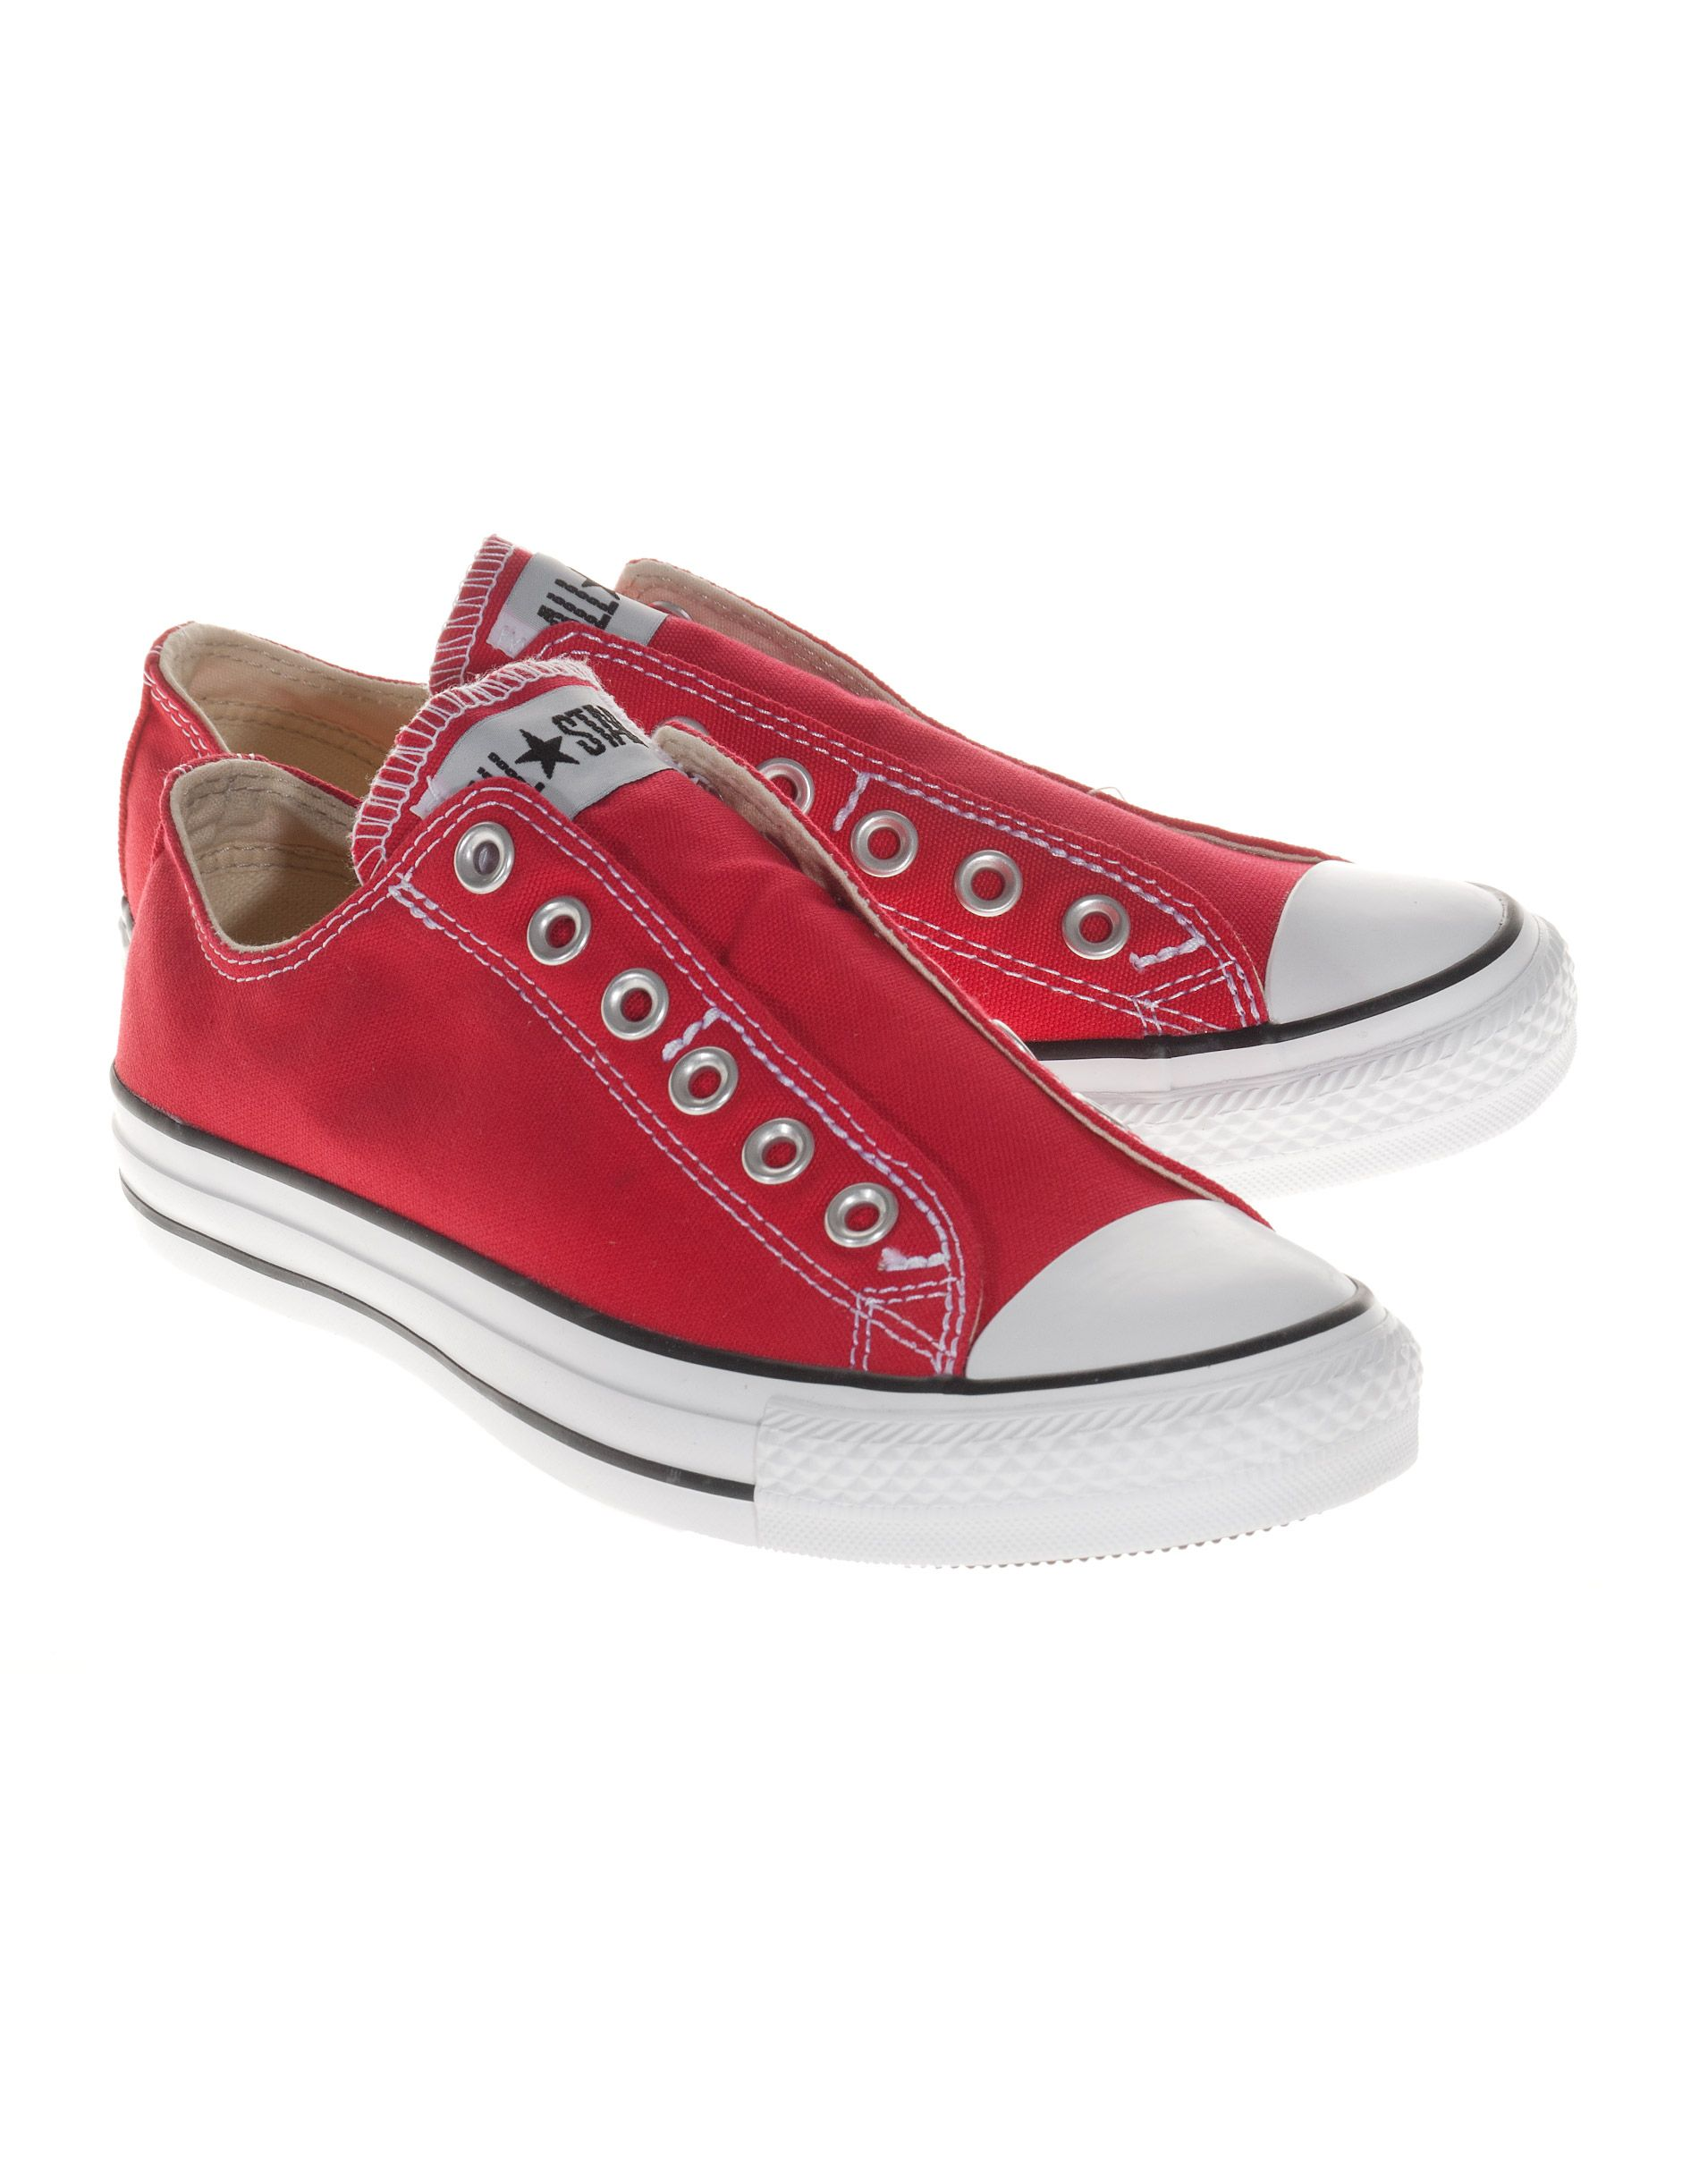 b271c05388e868 CONVERSE Sneakers Loose Red Slip on chucks - Shoes